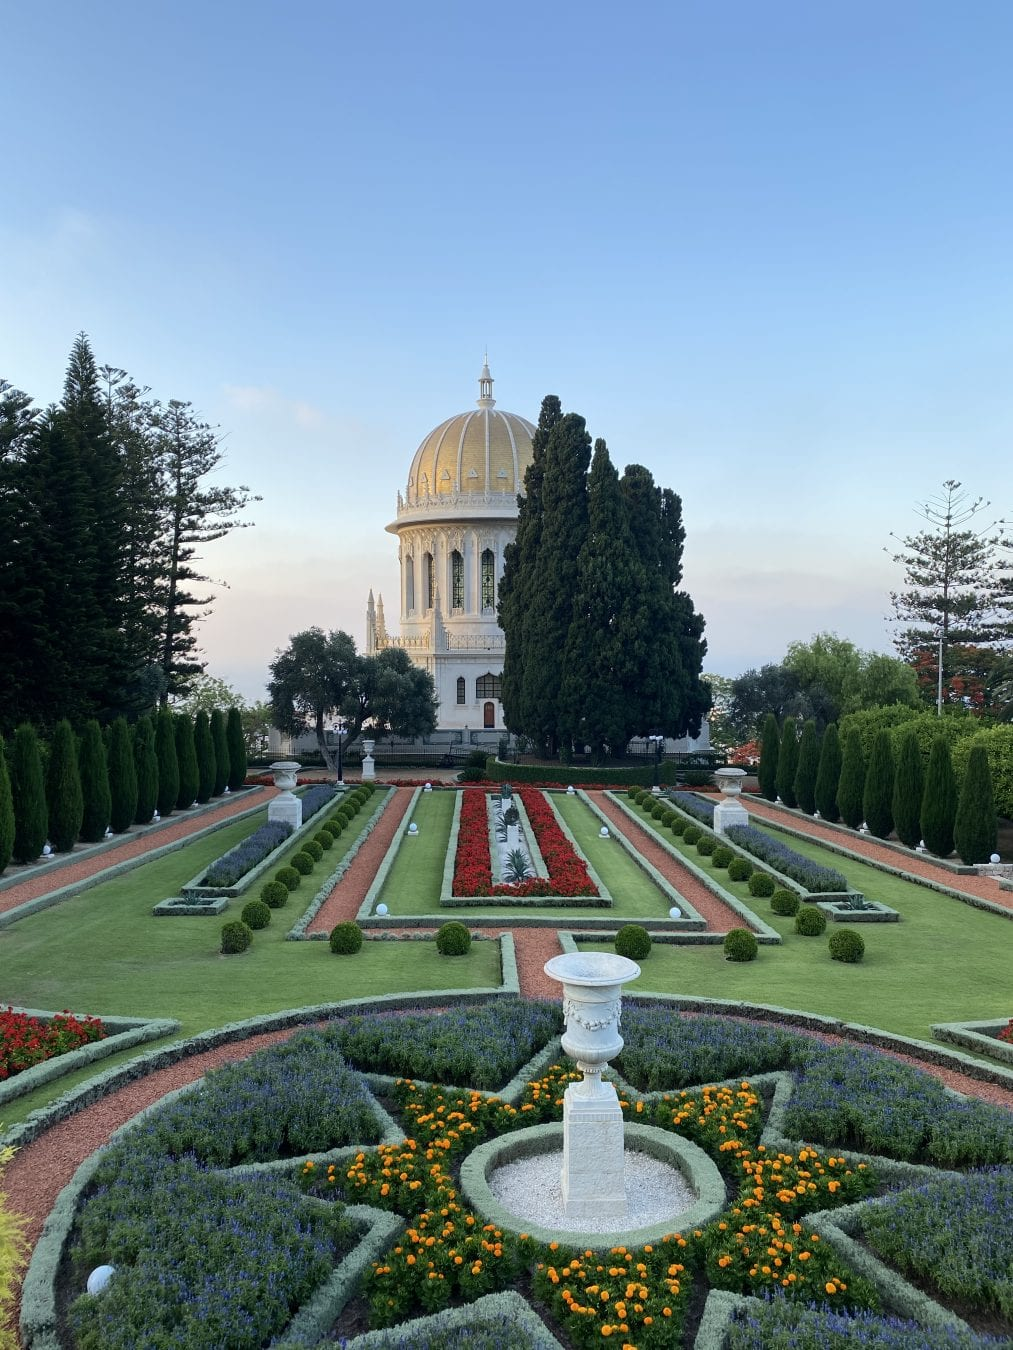 The Bahá'í Gardens in Haifa comprise a staircase of nineteen terraces extending all the way up the northern slope of Mount Carmel